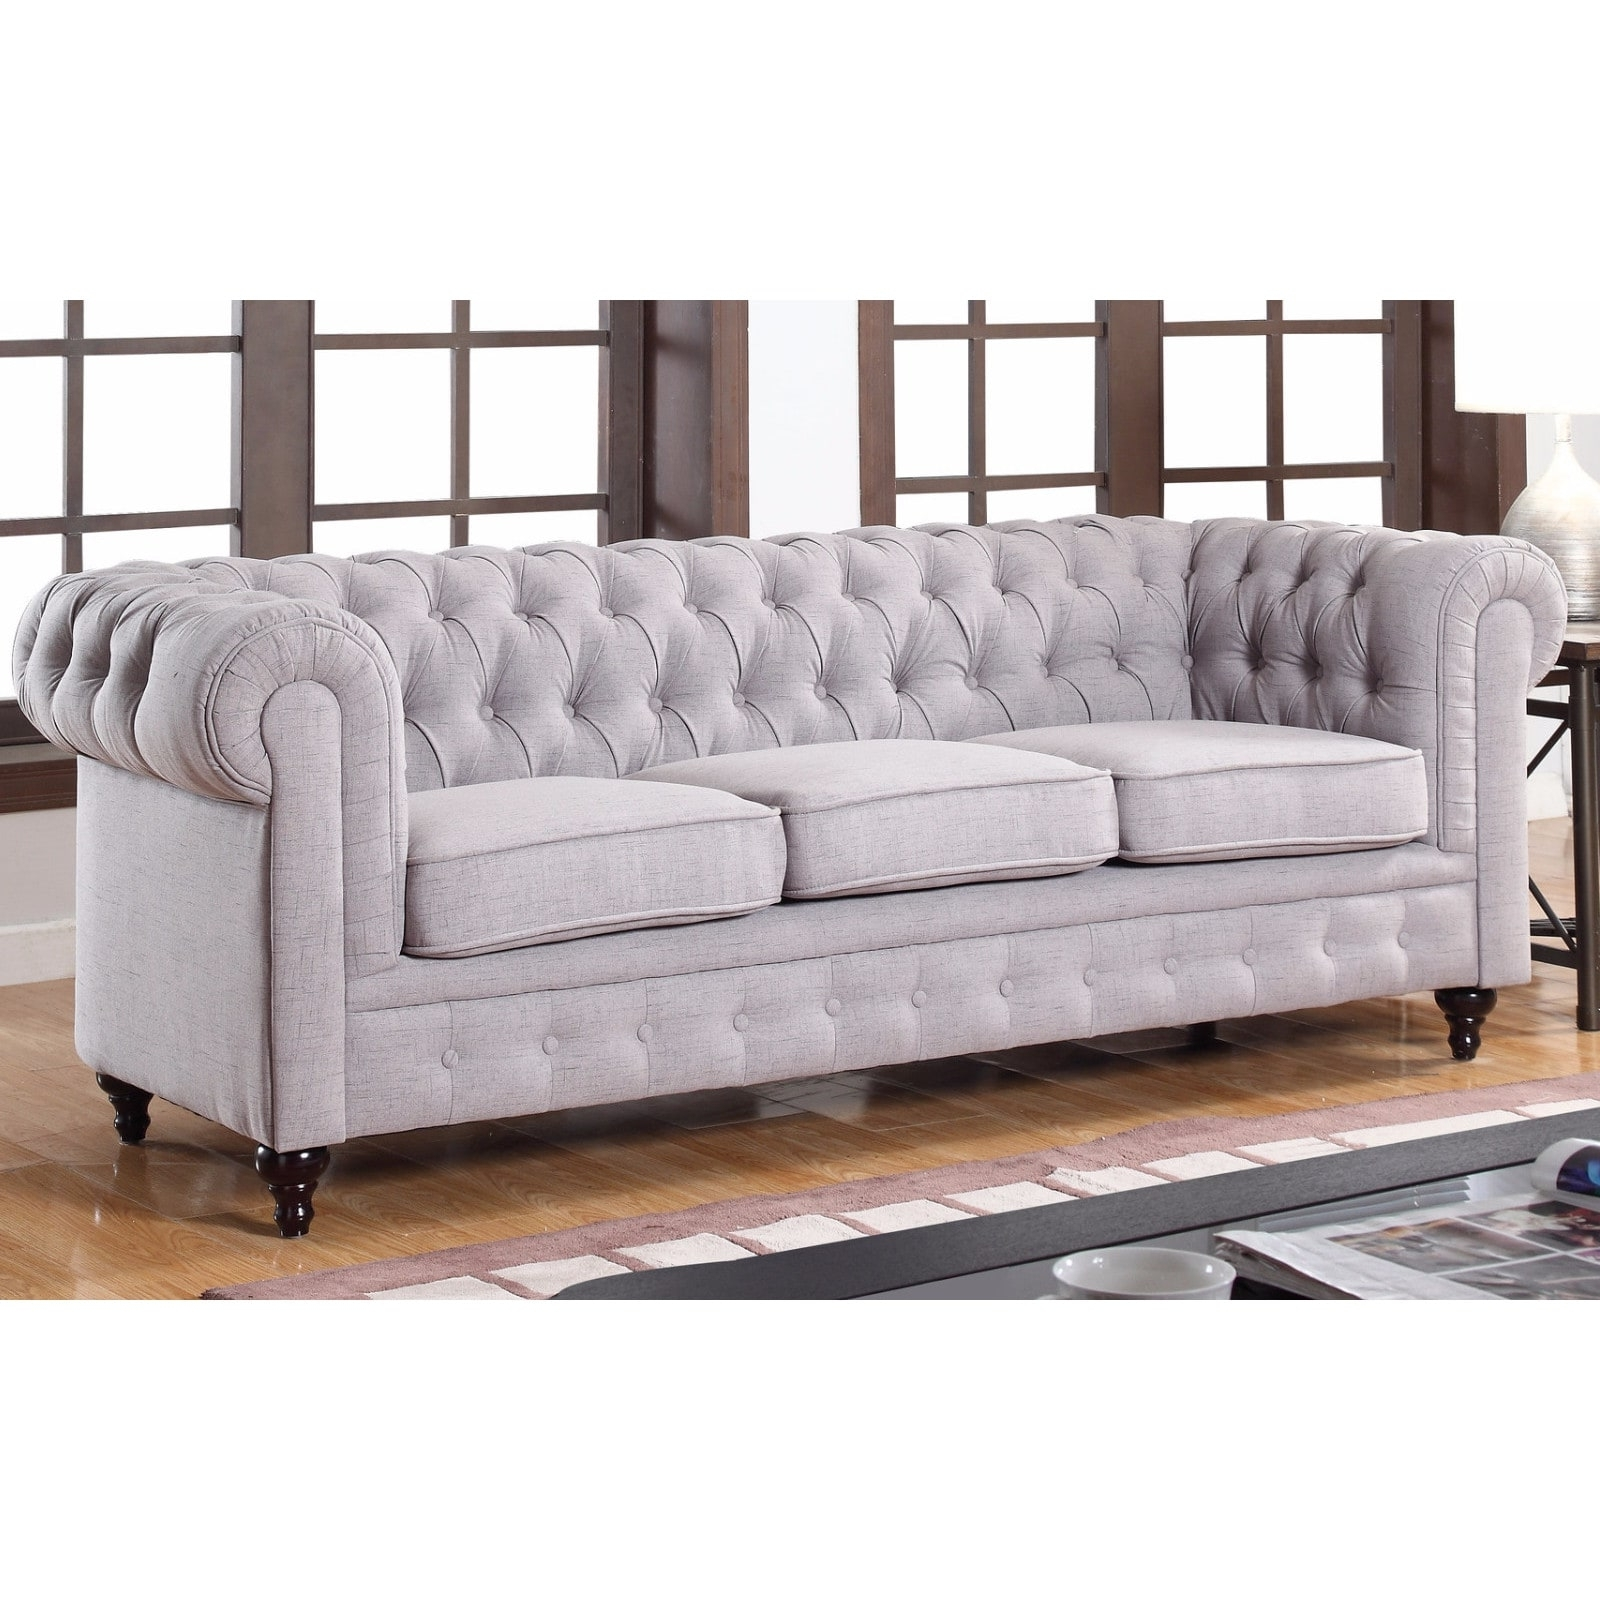 Classic Stone Scroll Arm Tufted Linen Fabric Chesterfield Large Throughout Most Up To Date Tufted Linen Sofas (View 1 of 20)